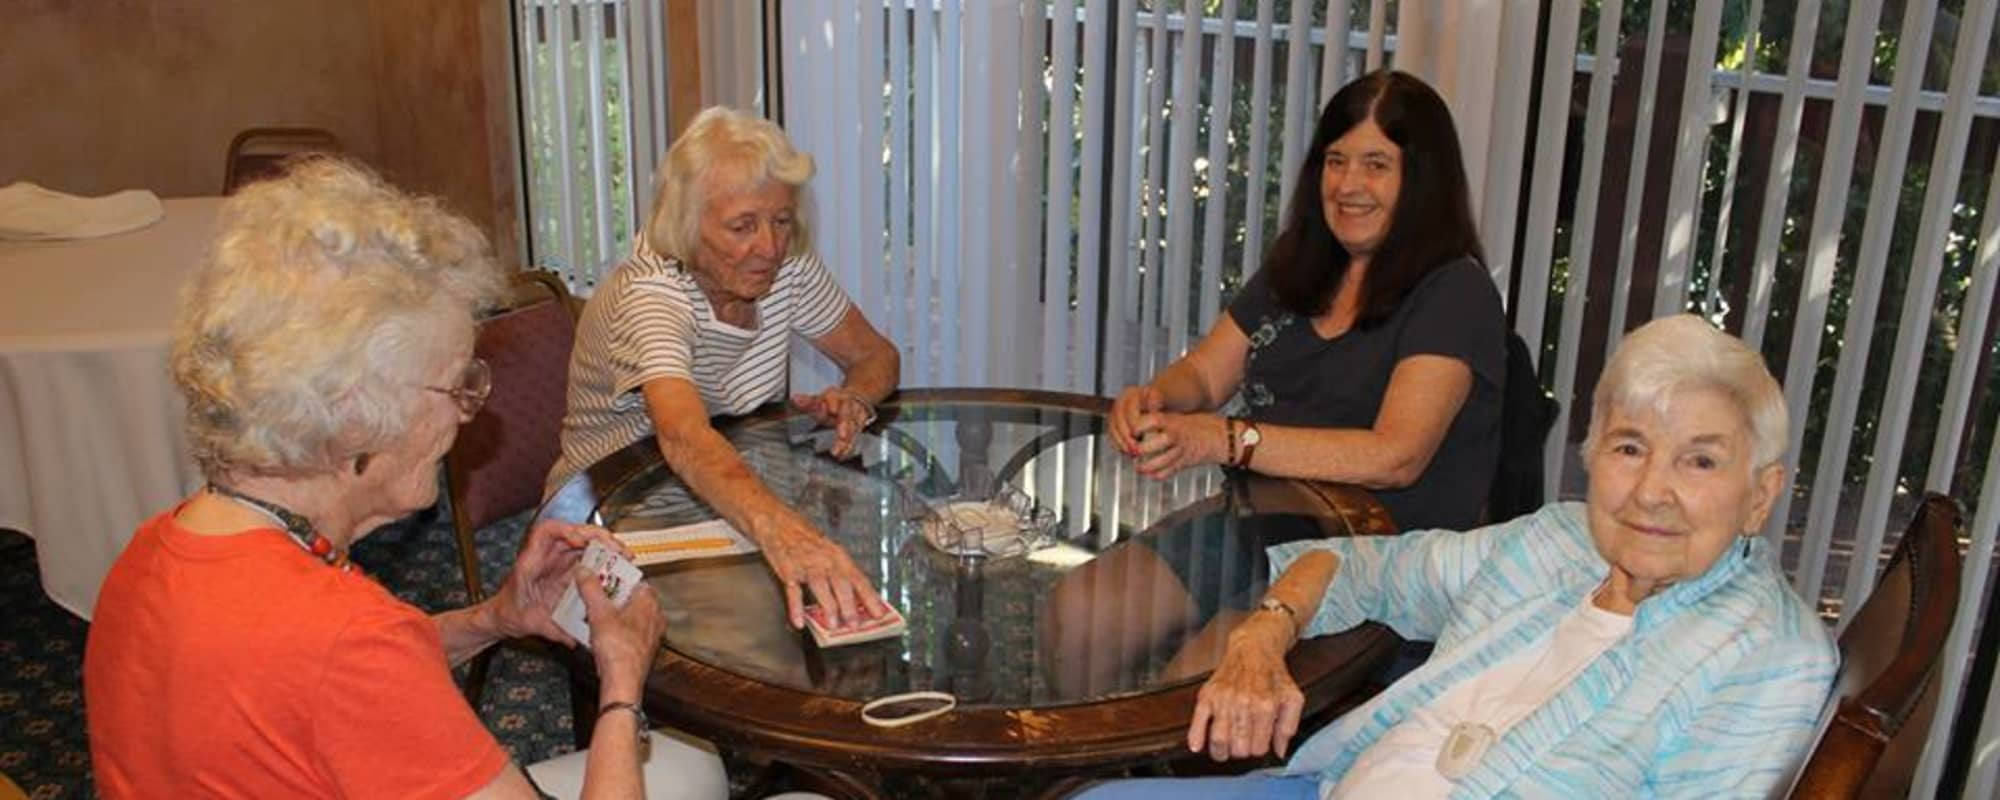 Seniors playing cards at The Montera in La Mesa, California